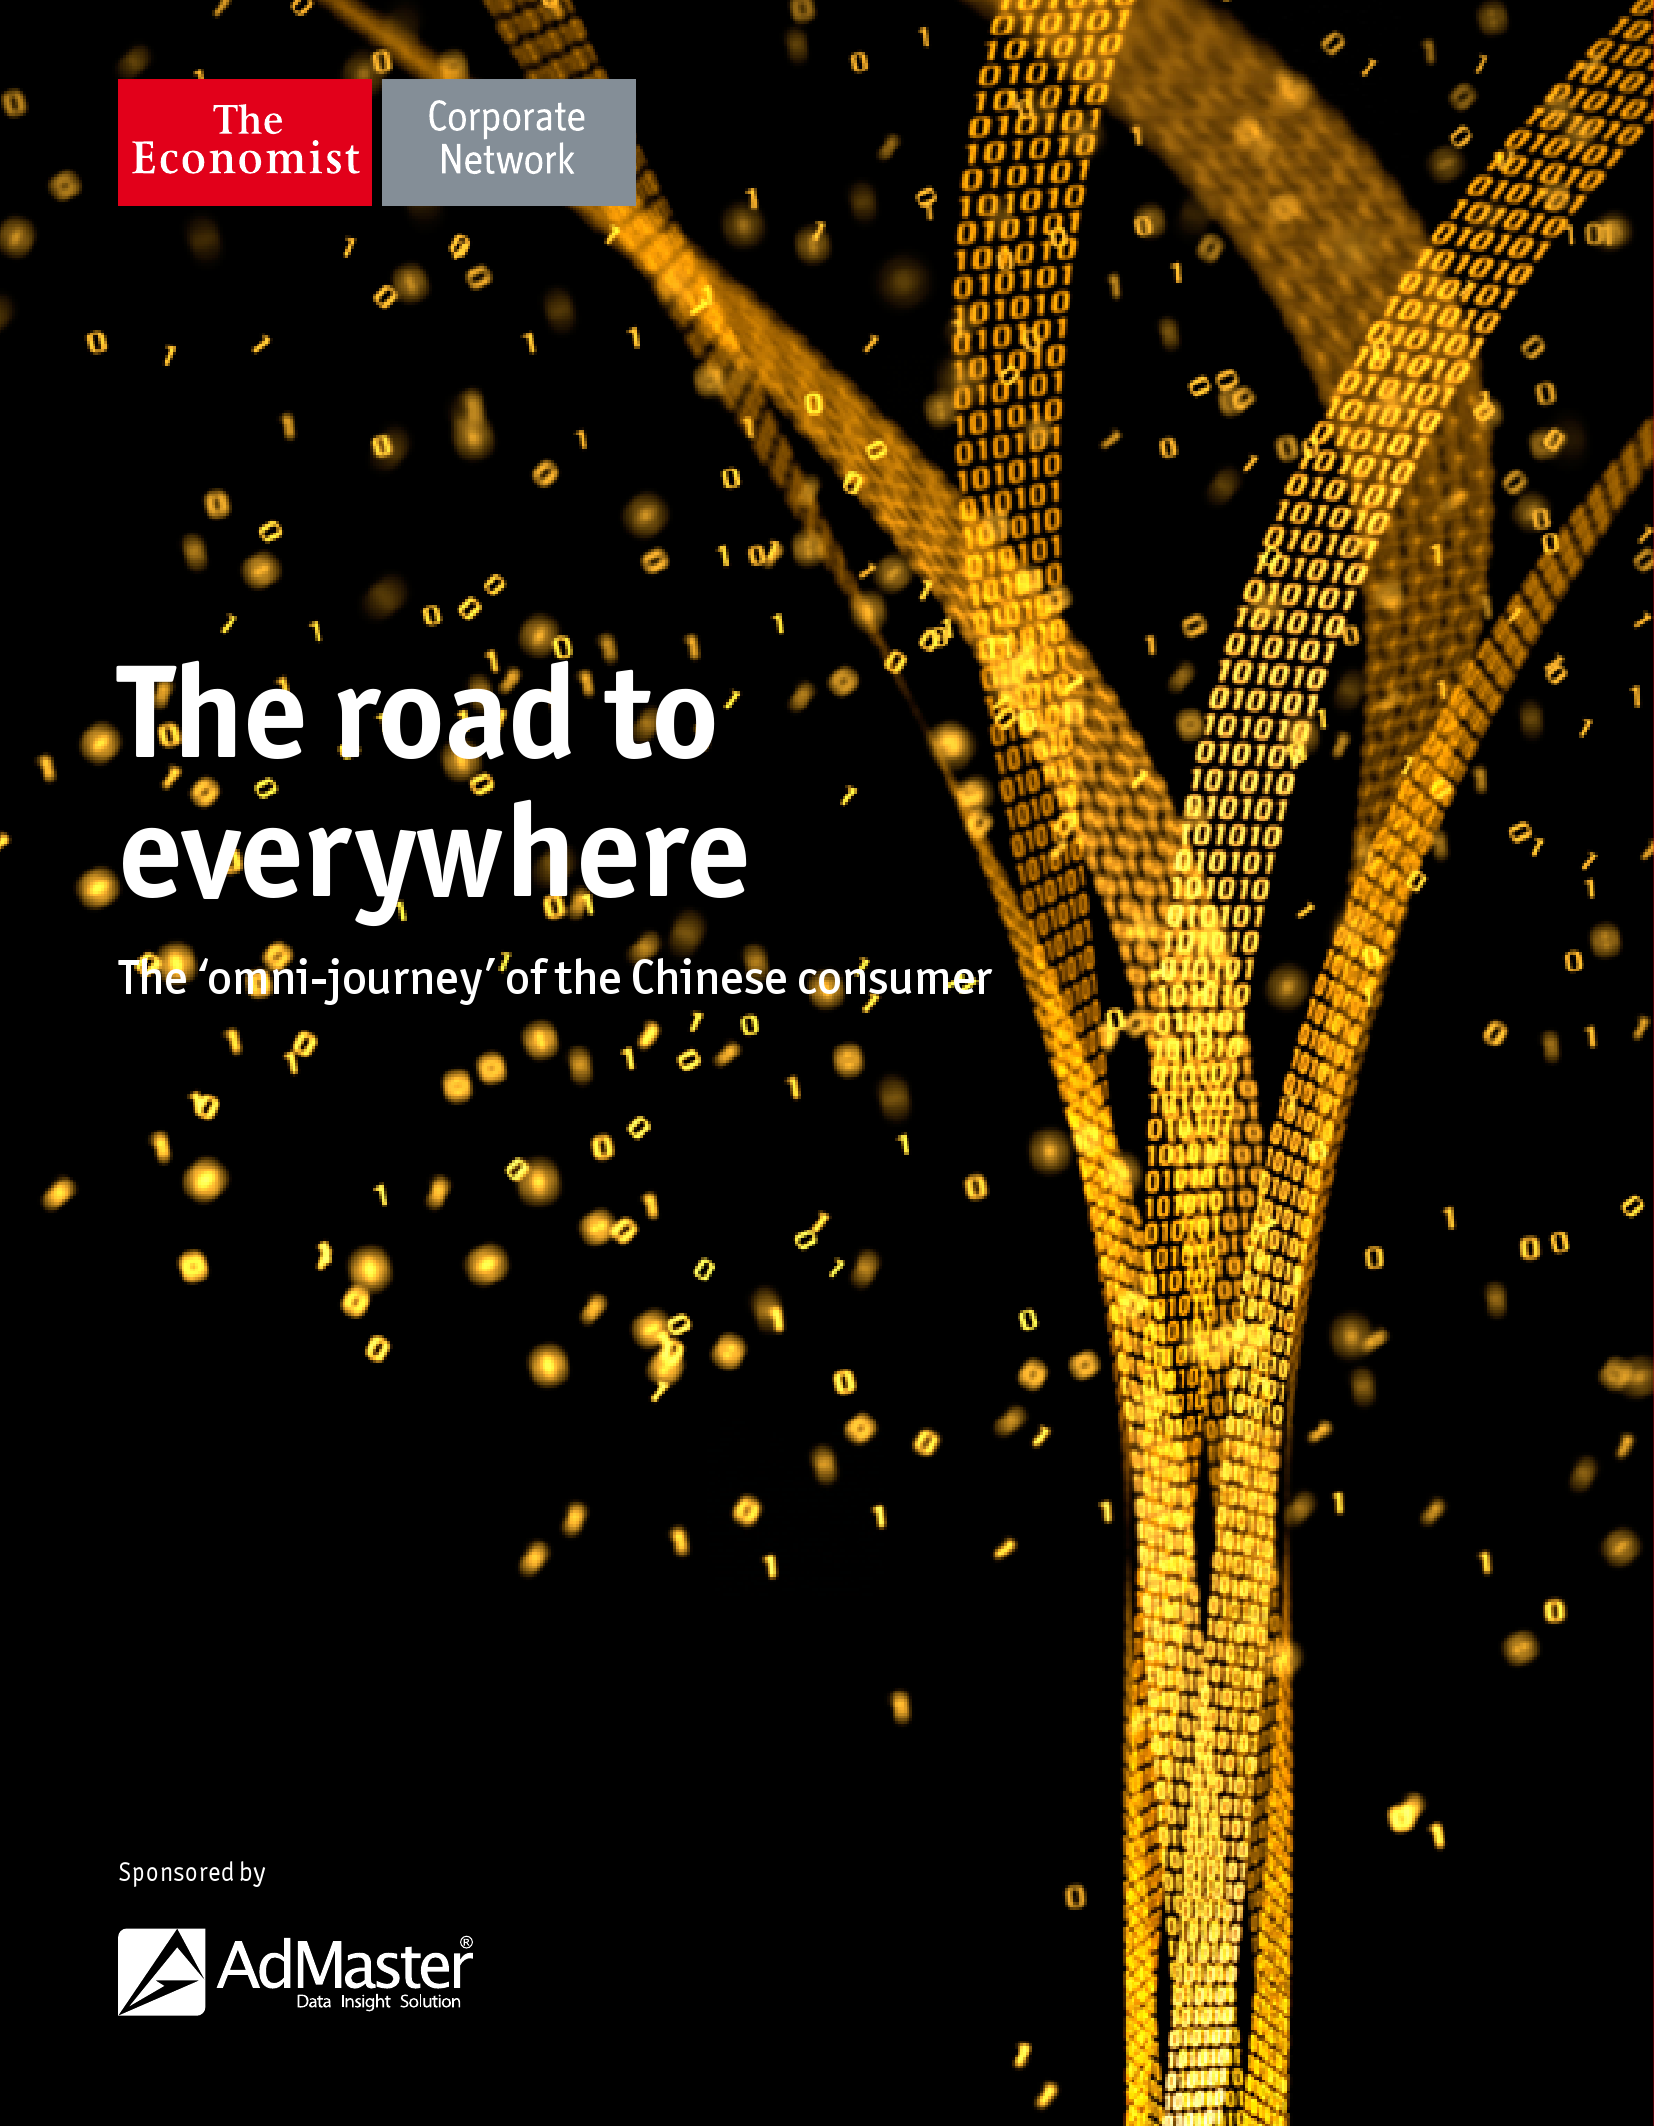 The Road to Everywhere – The 'omni-journey' of the Chinese consumer(20160225)_000001